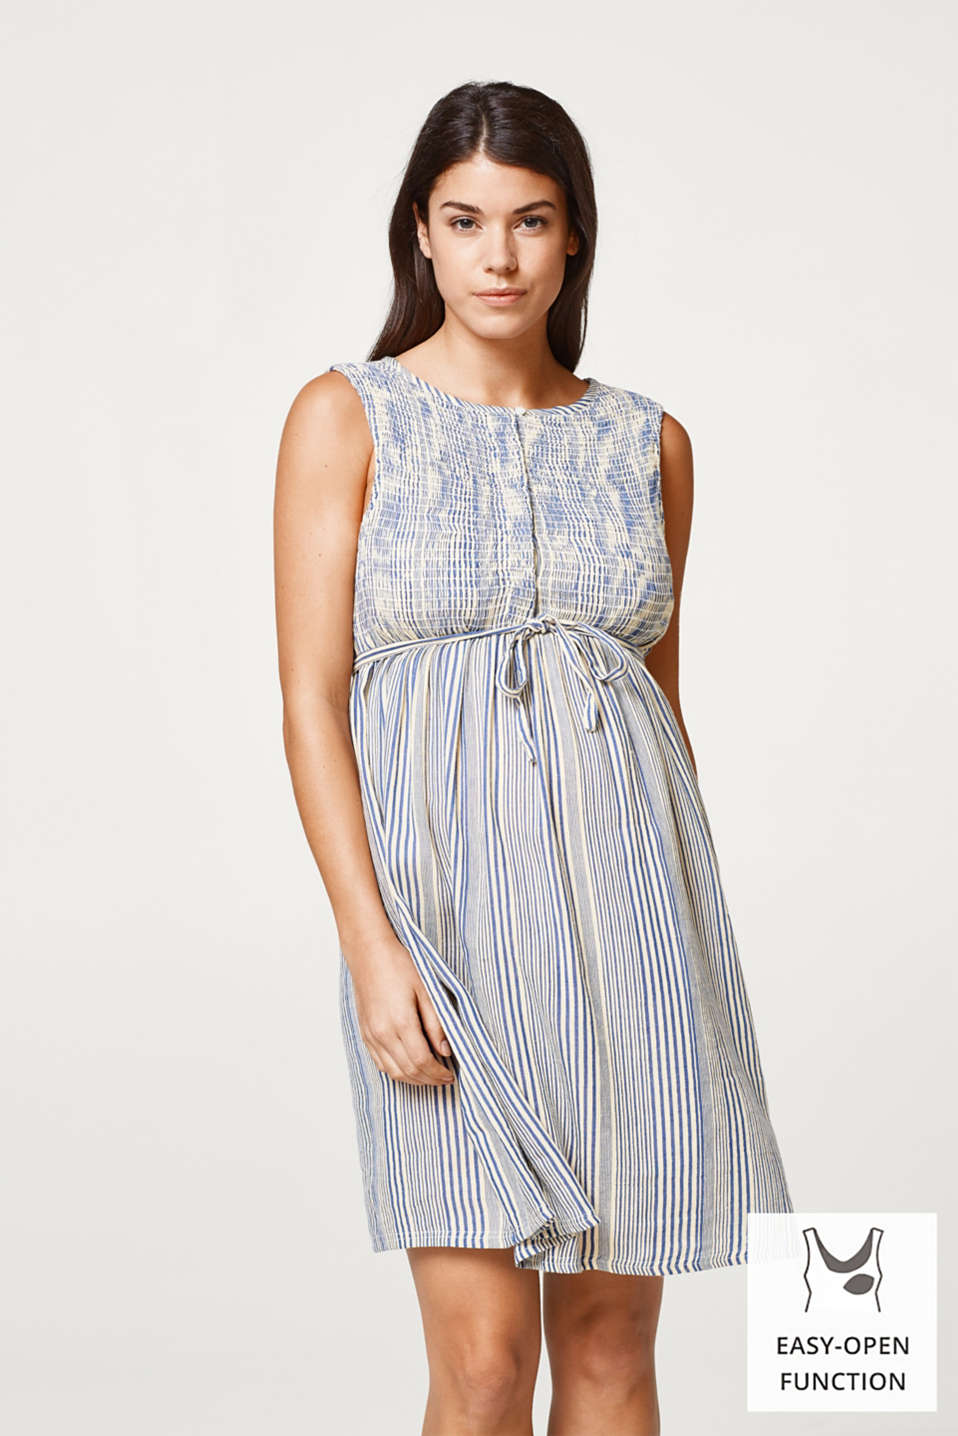 Esprit - Airy, linen blend nursing dress